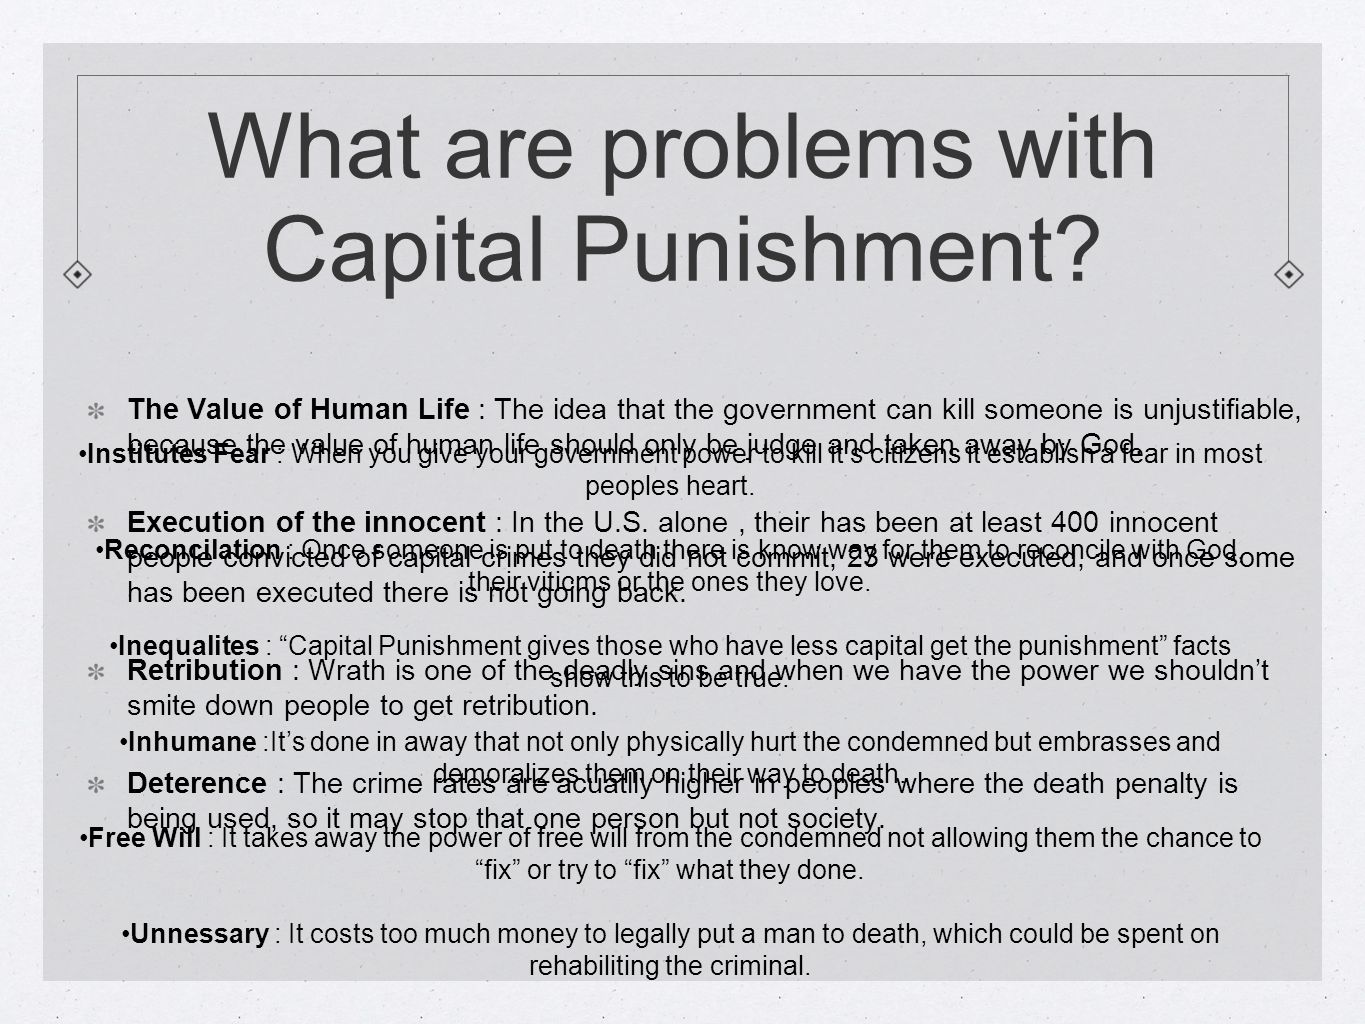 a history of capital punishment in different societies History of the death penalty  depicts the history of abolition of capital punishment in the united states, on a state by state basis, from 1846 to 2012 .